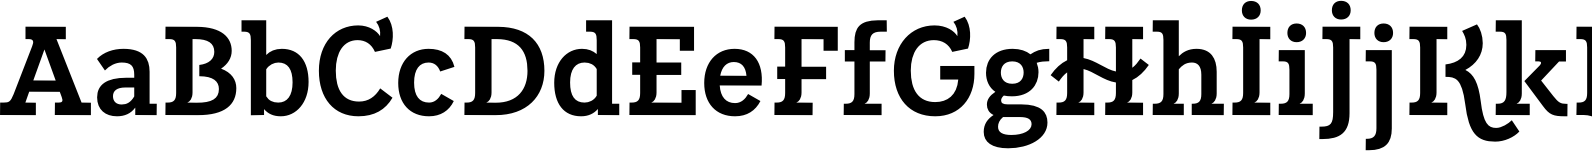 LeanO FY Bold Font